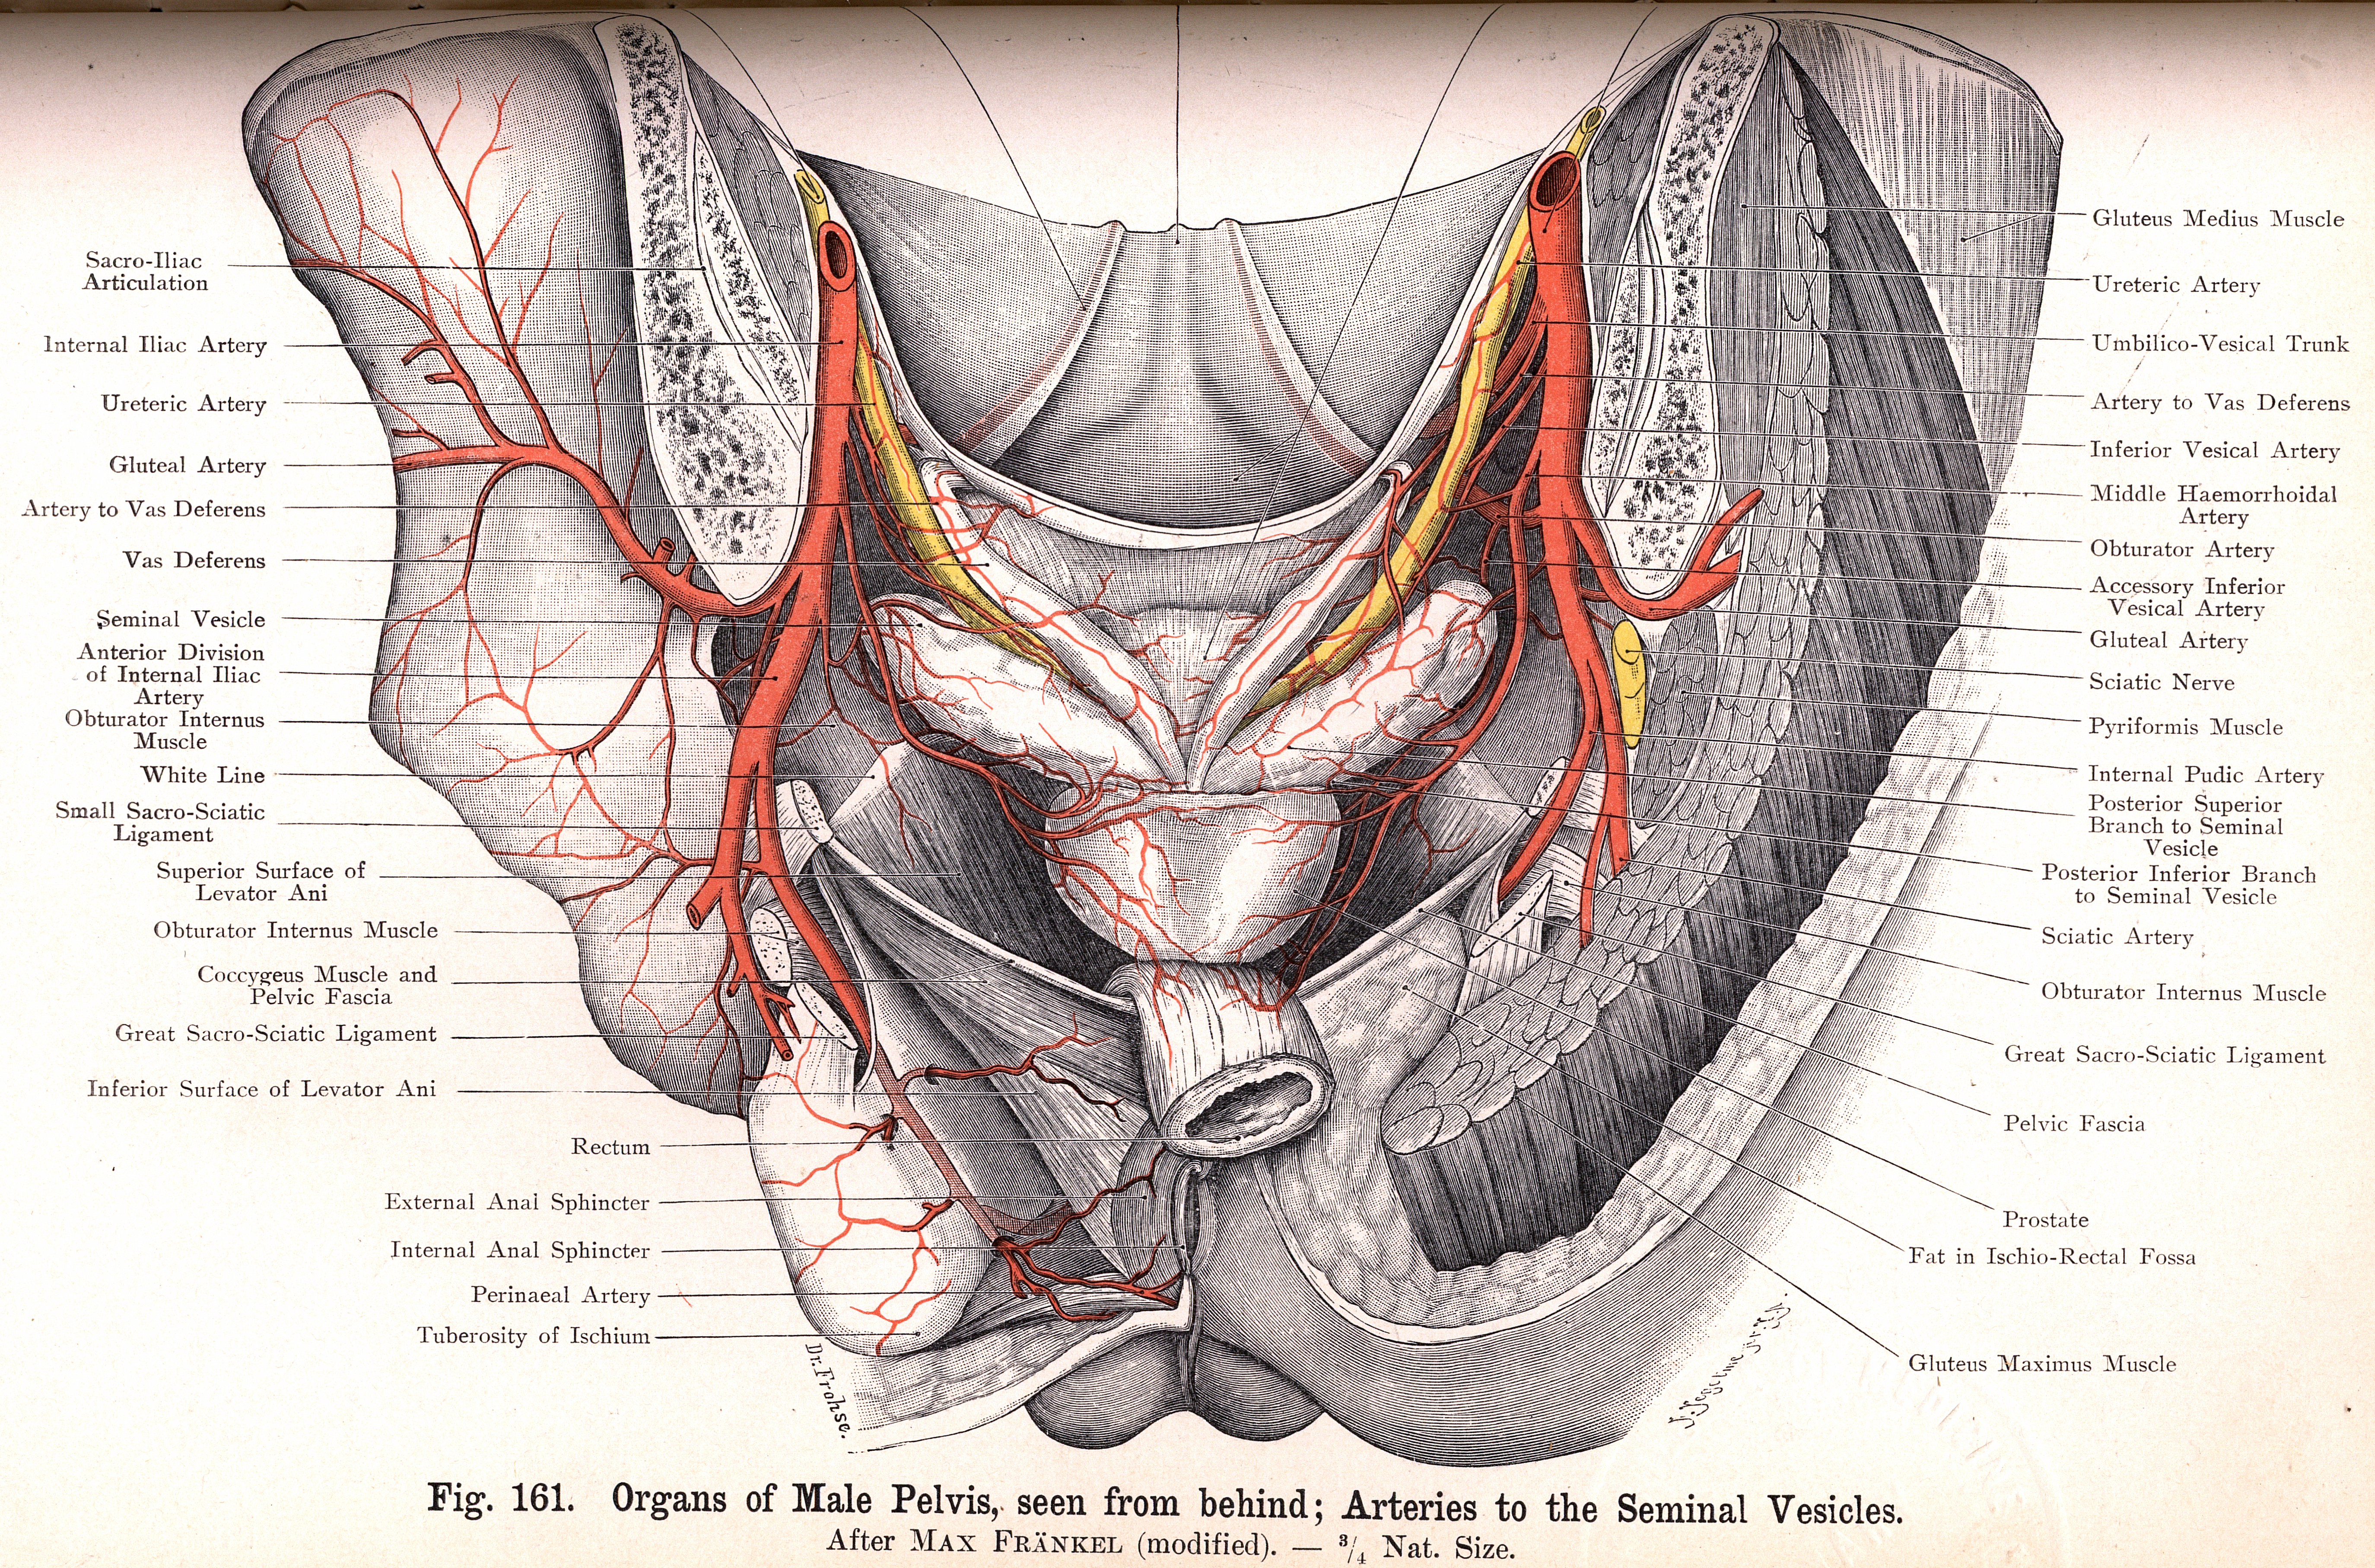 161 Male Pelvic Organs From Behind Arteries To Seminal Vesicles